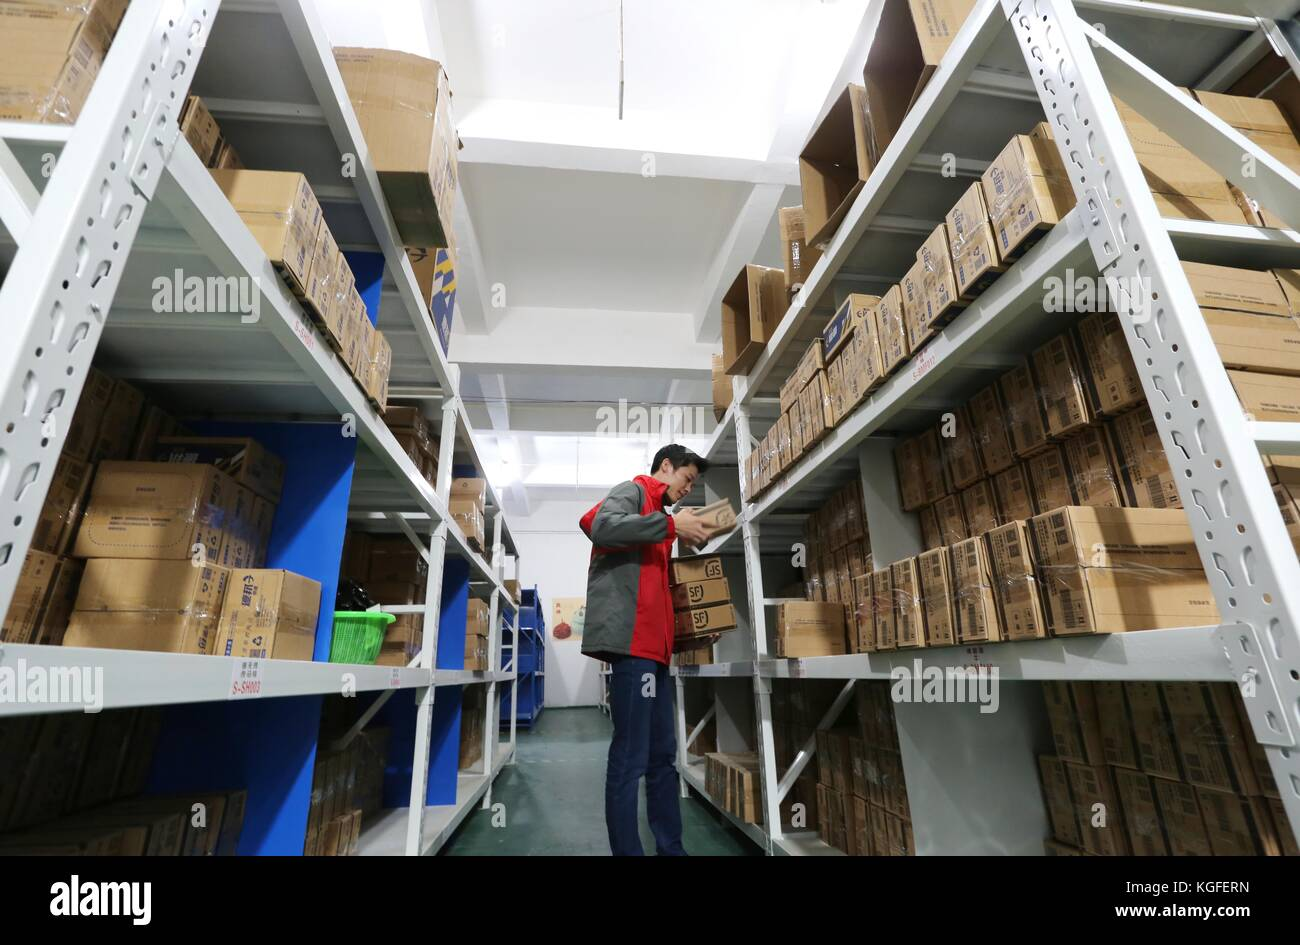 lianyungang single personals Workers prepare packages for delivery at a sorting center in lianyungang, jiangsu province during the singles day online shopping festival on november 11, 2016.